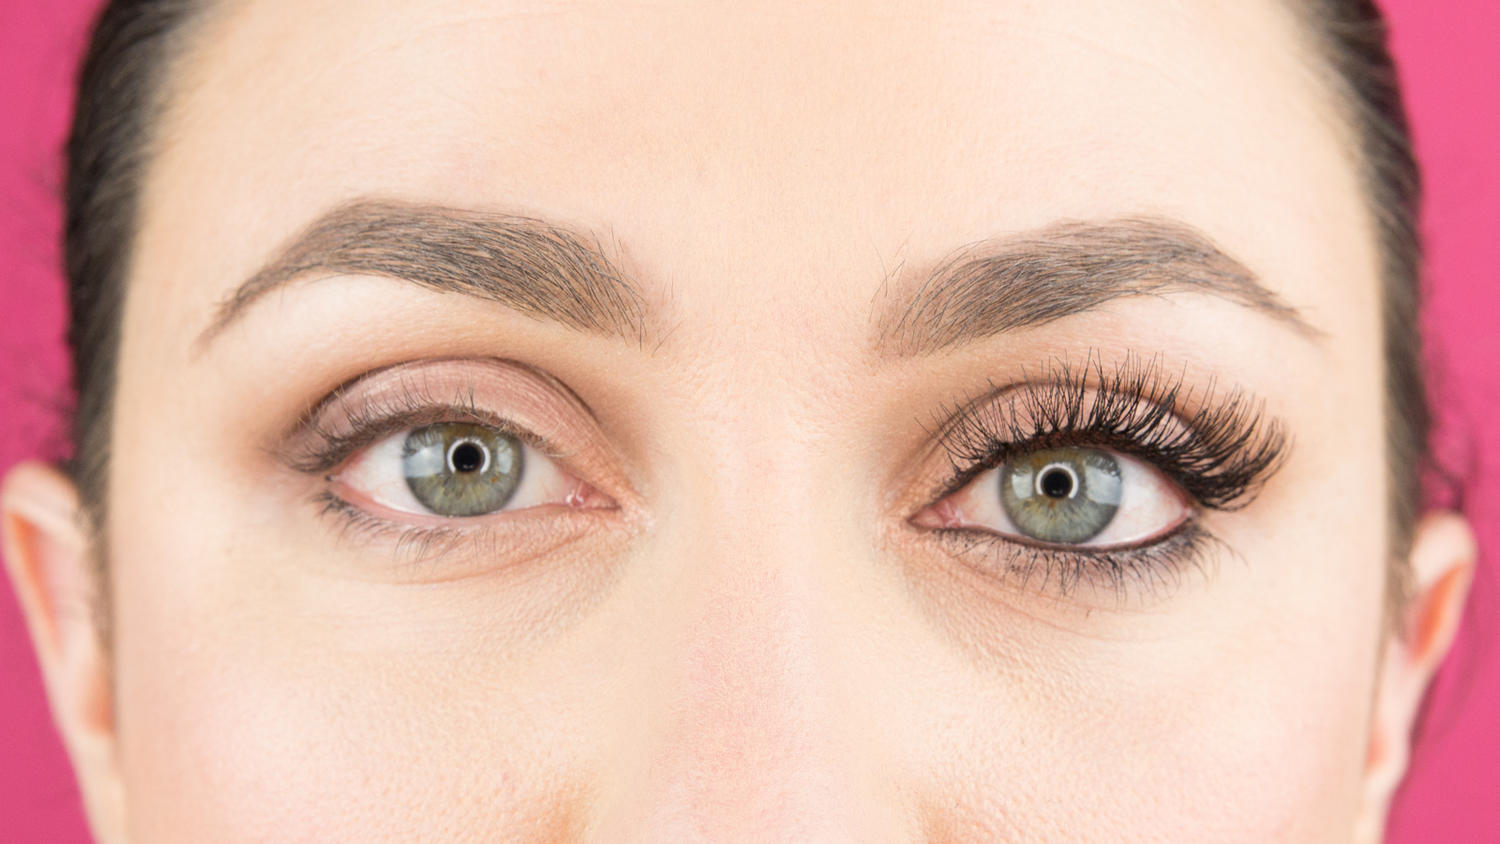 How To Get Long Eyelashes: Tips, Tricks & Products That